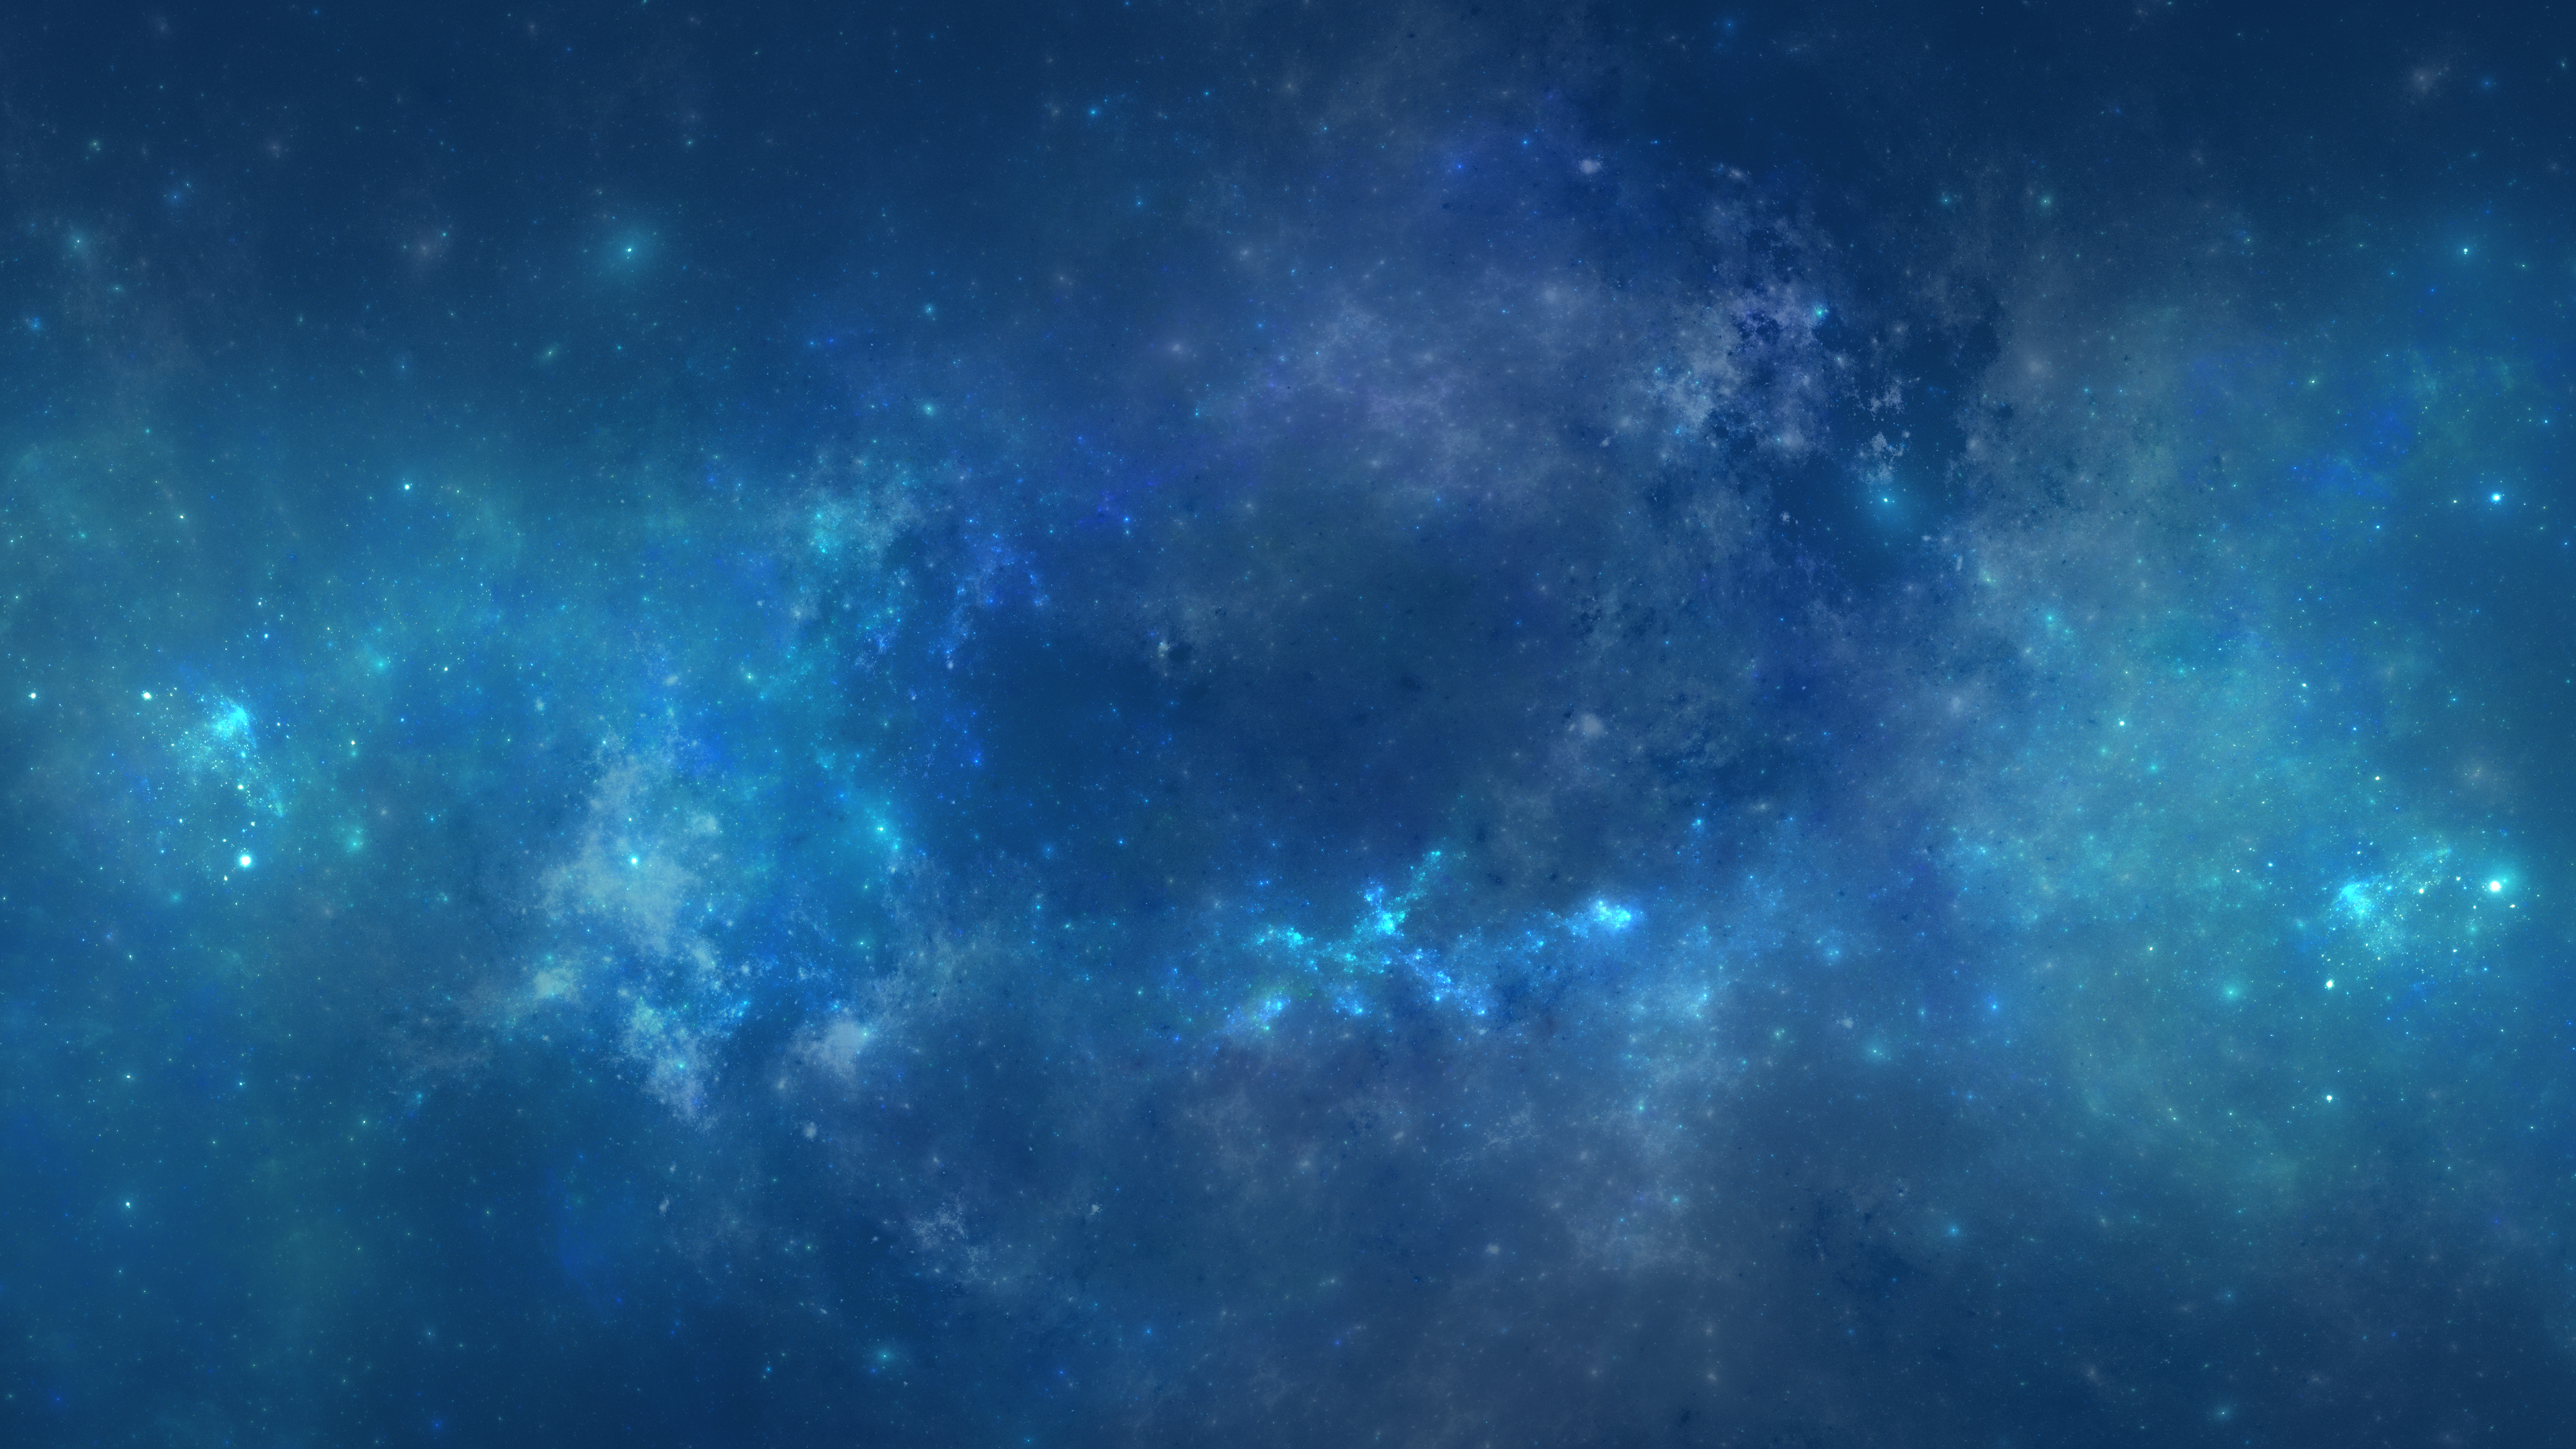 Wallpapers Blue Drawings and Paintings Space Nebulae Stars 4K 3840x2160